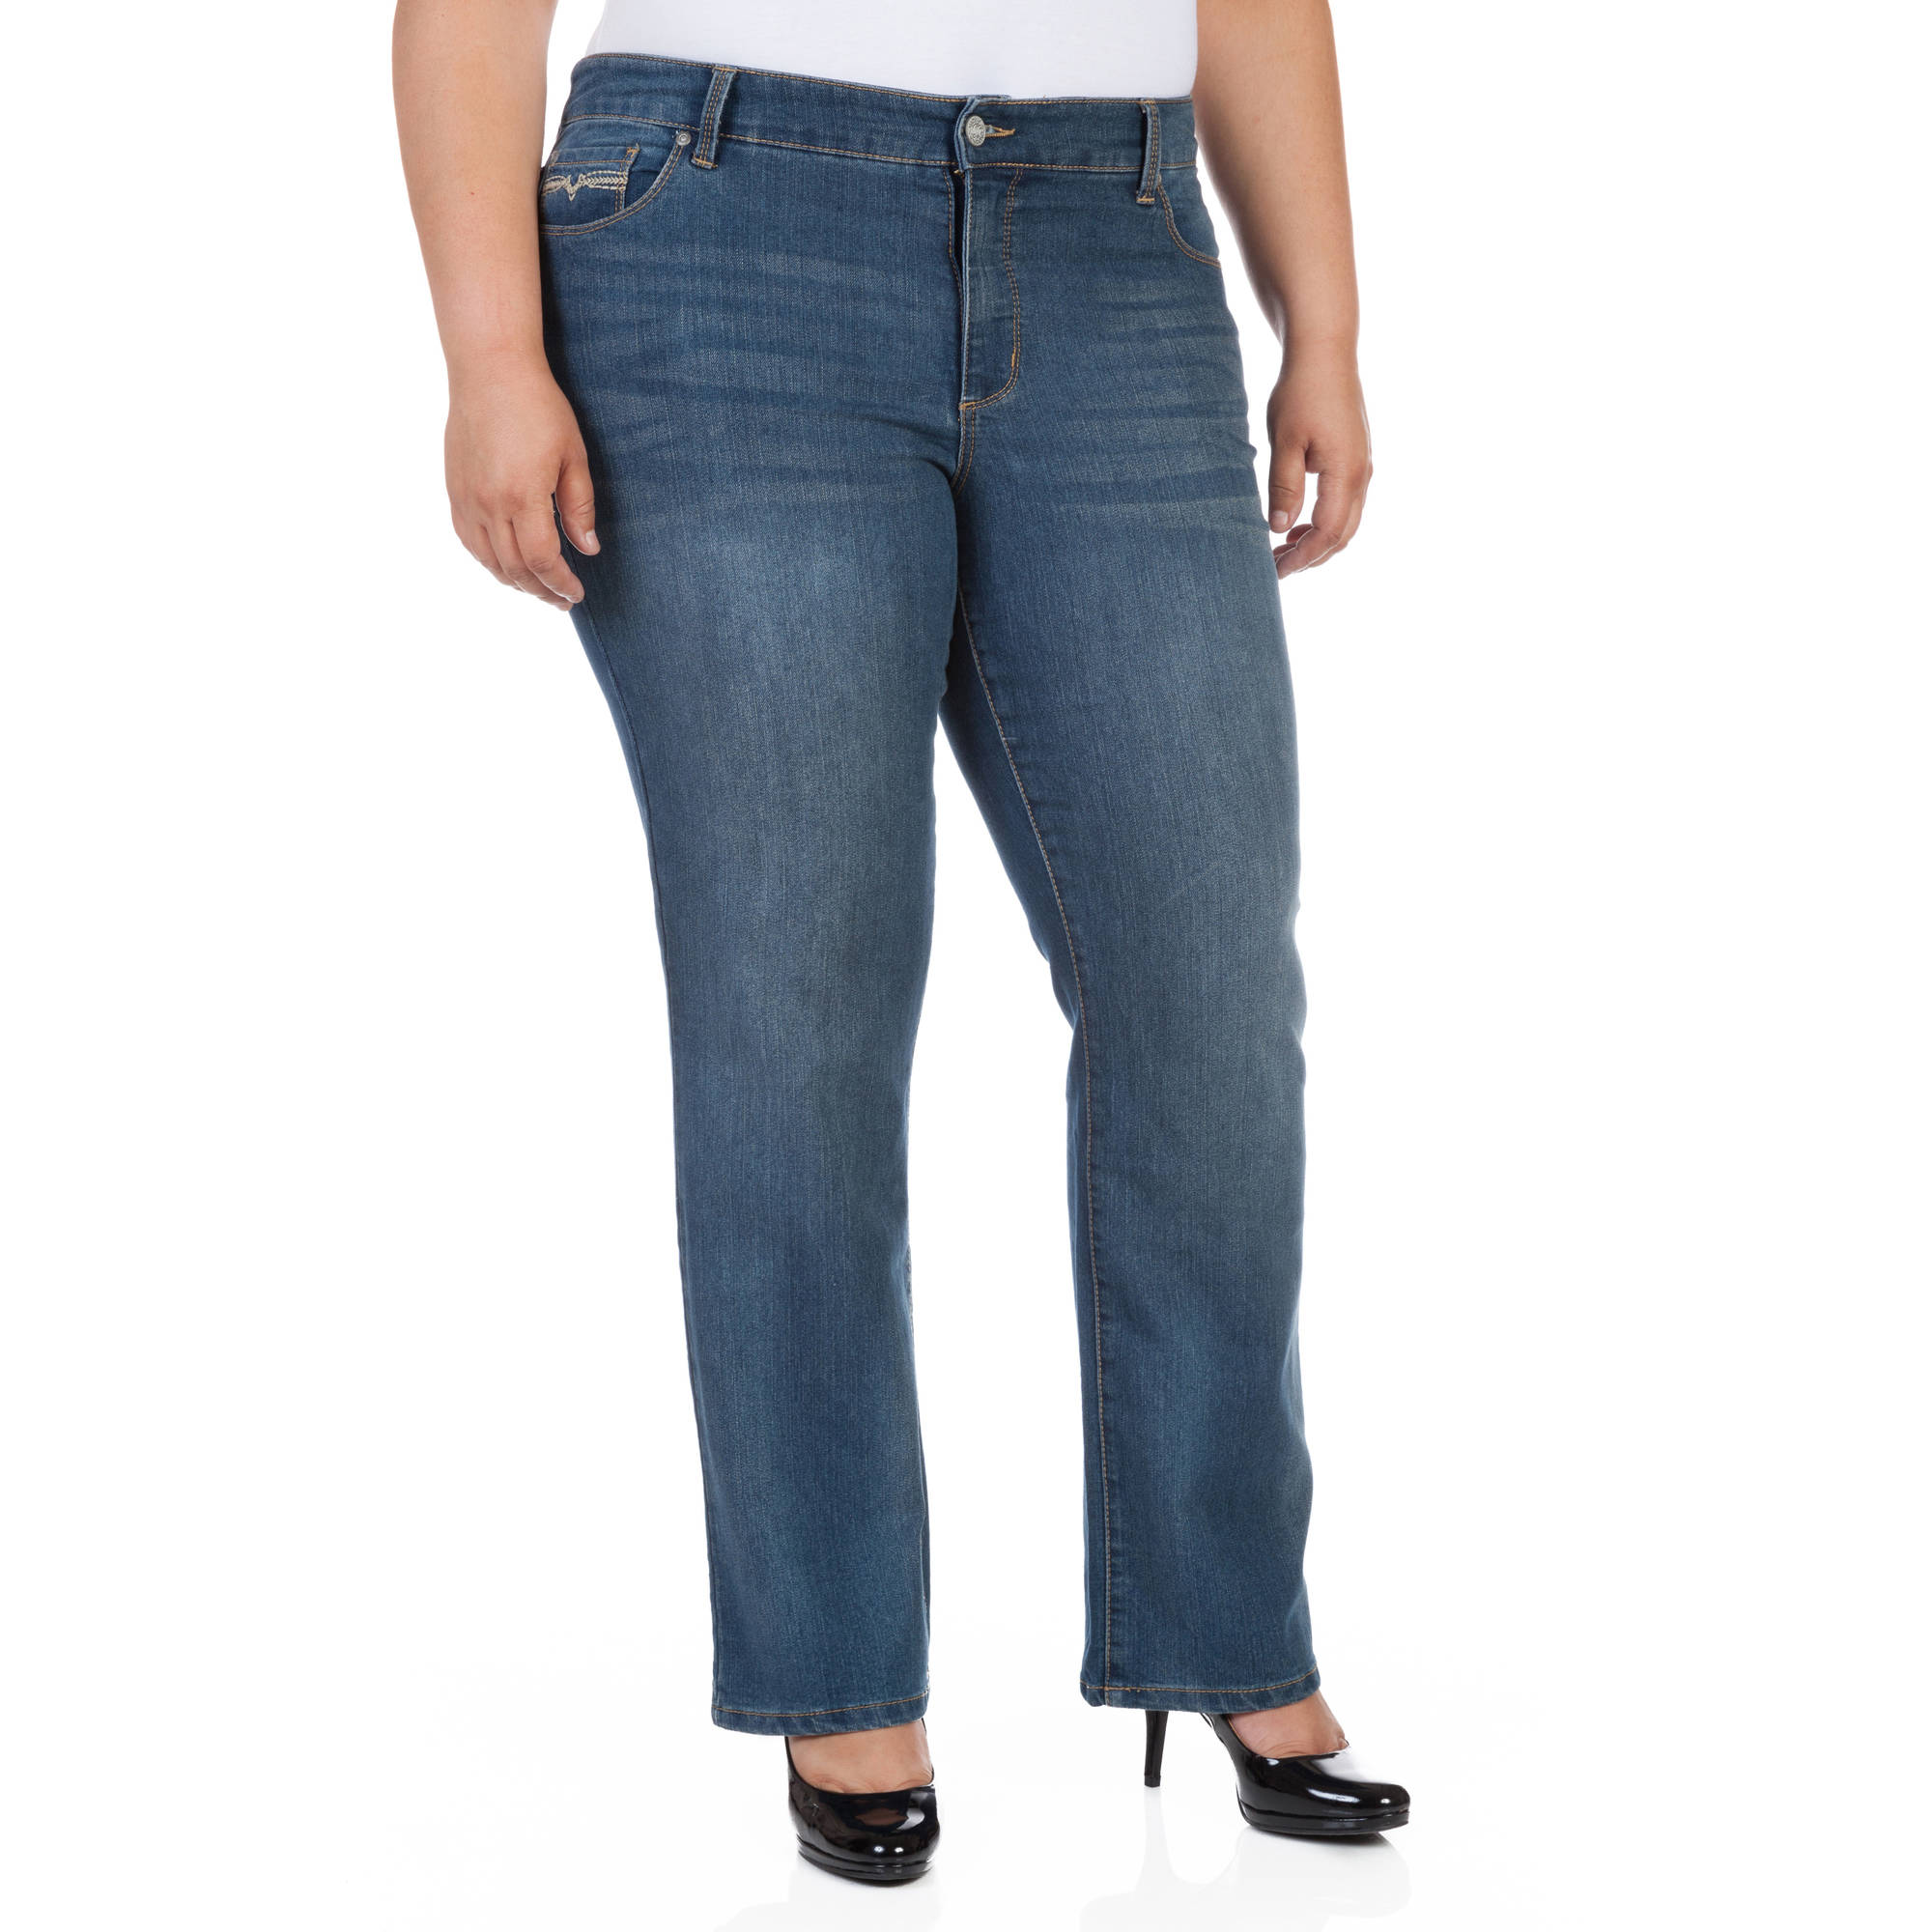 Faded Glory Women's Plus-Size Slim Boot cut Jeans - Walmart.com